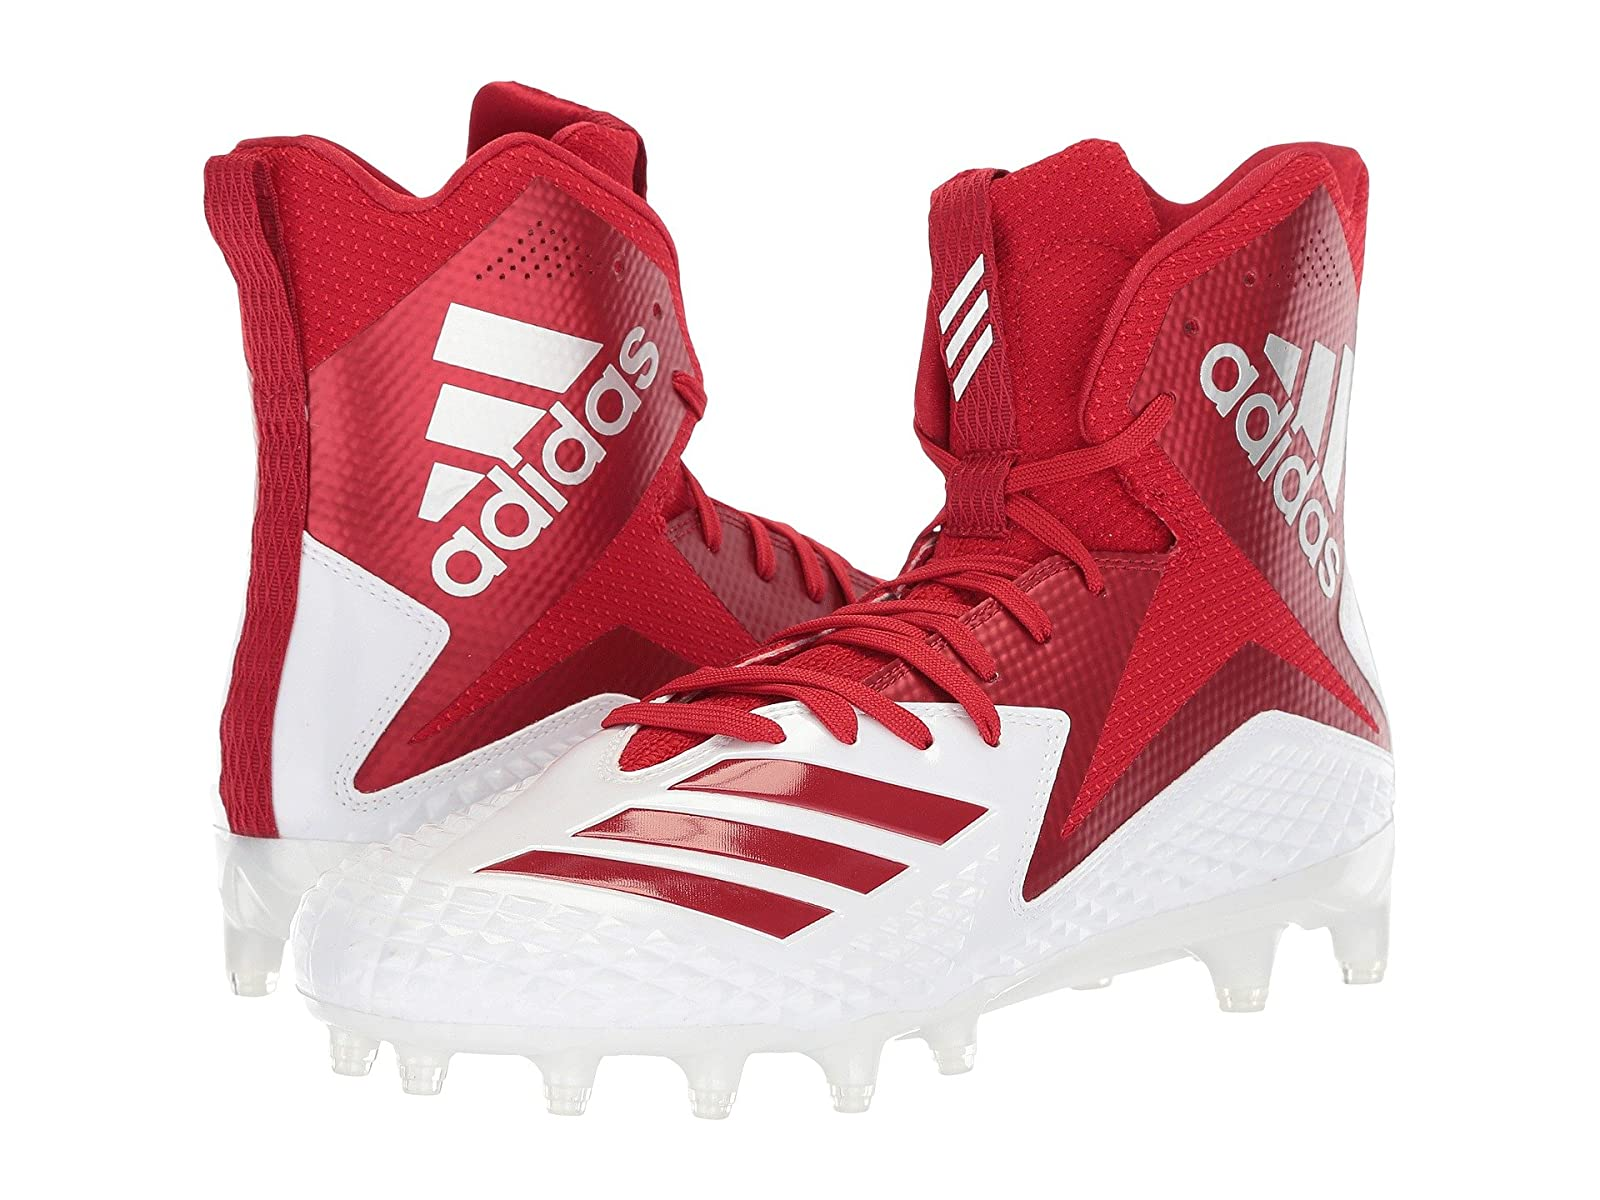 adidas Freak x Carbon HighStylish and characteristic shoes